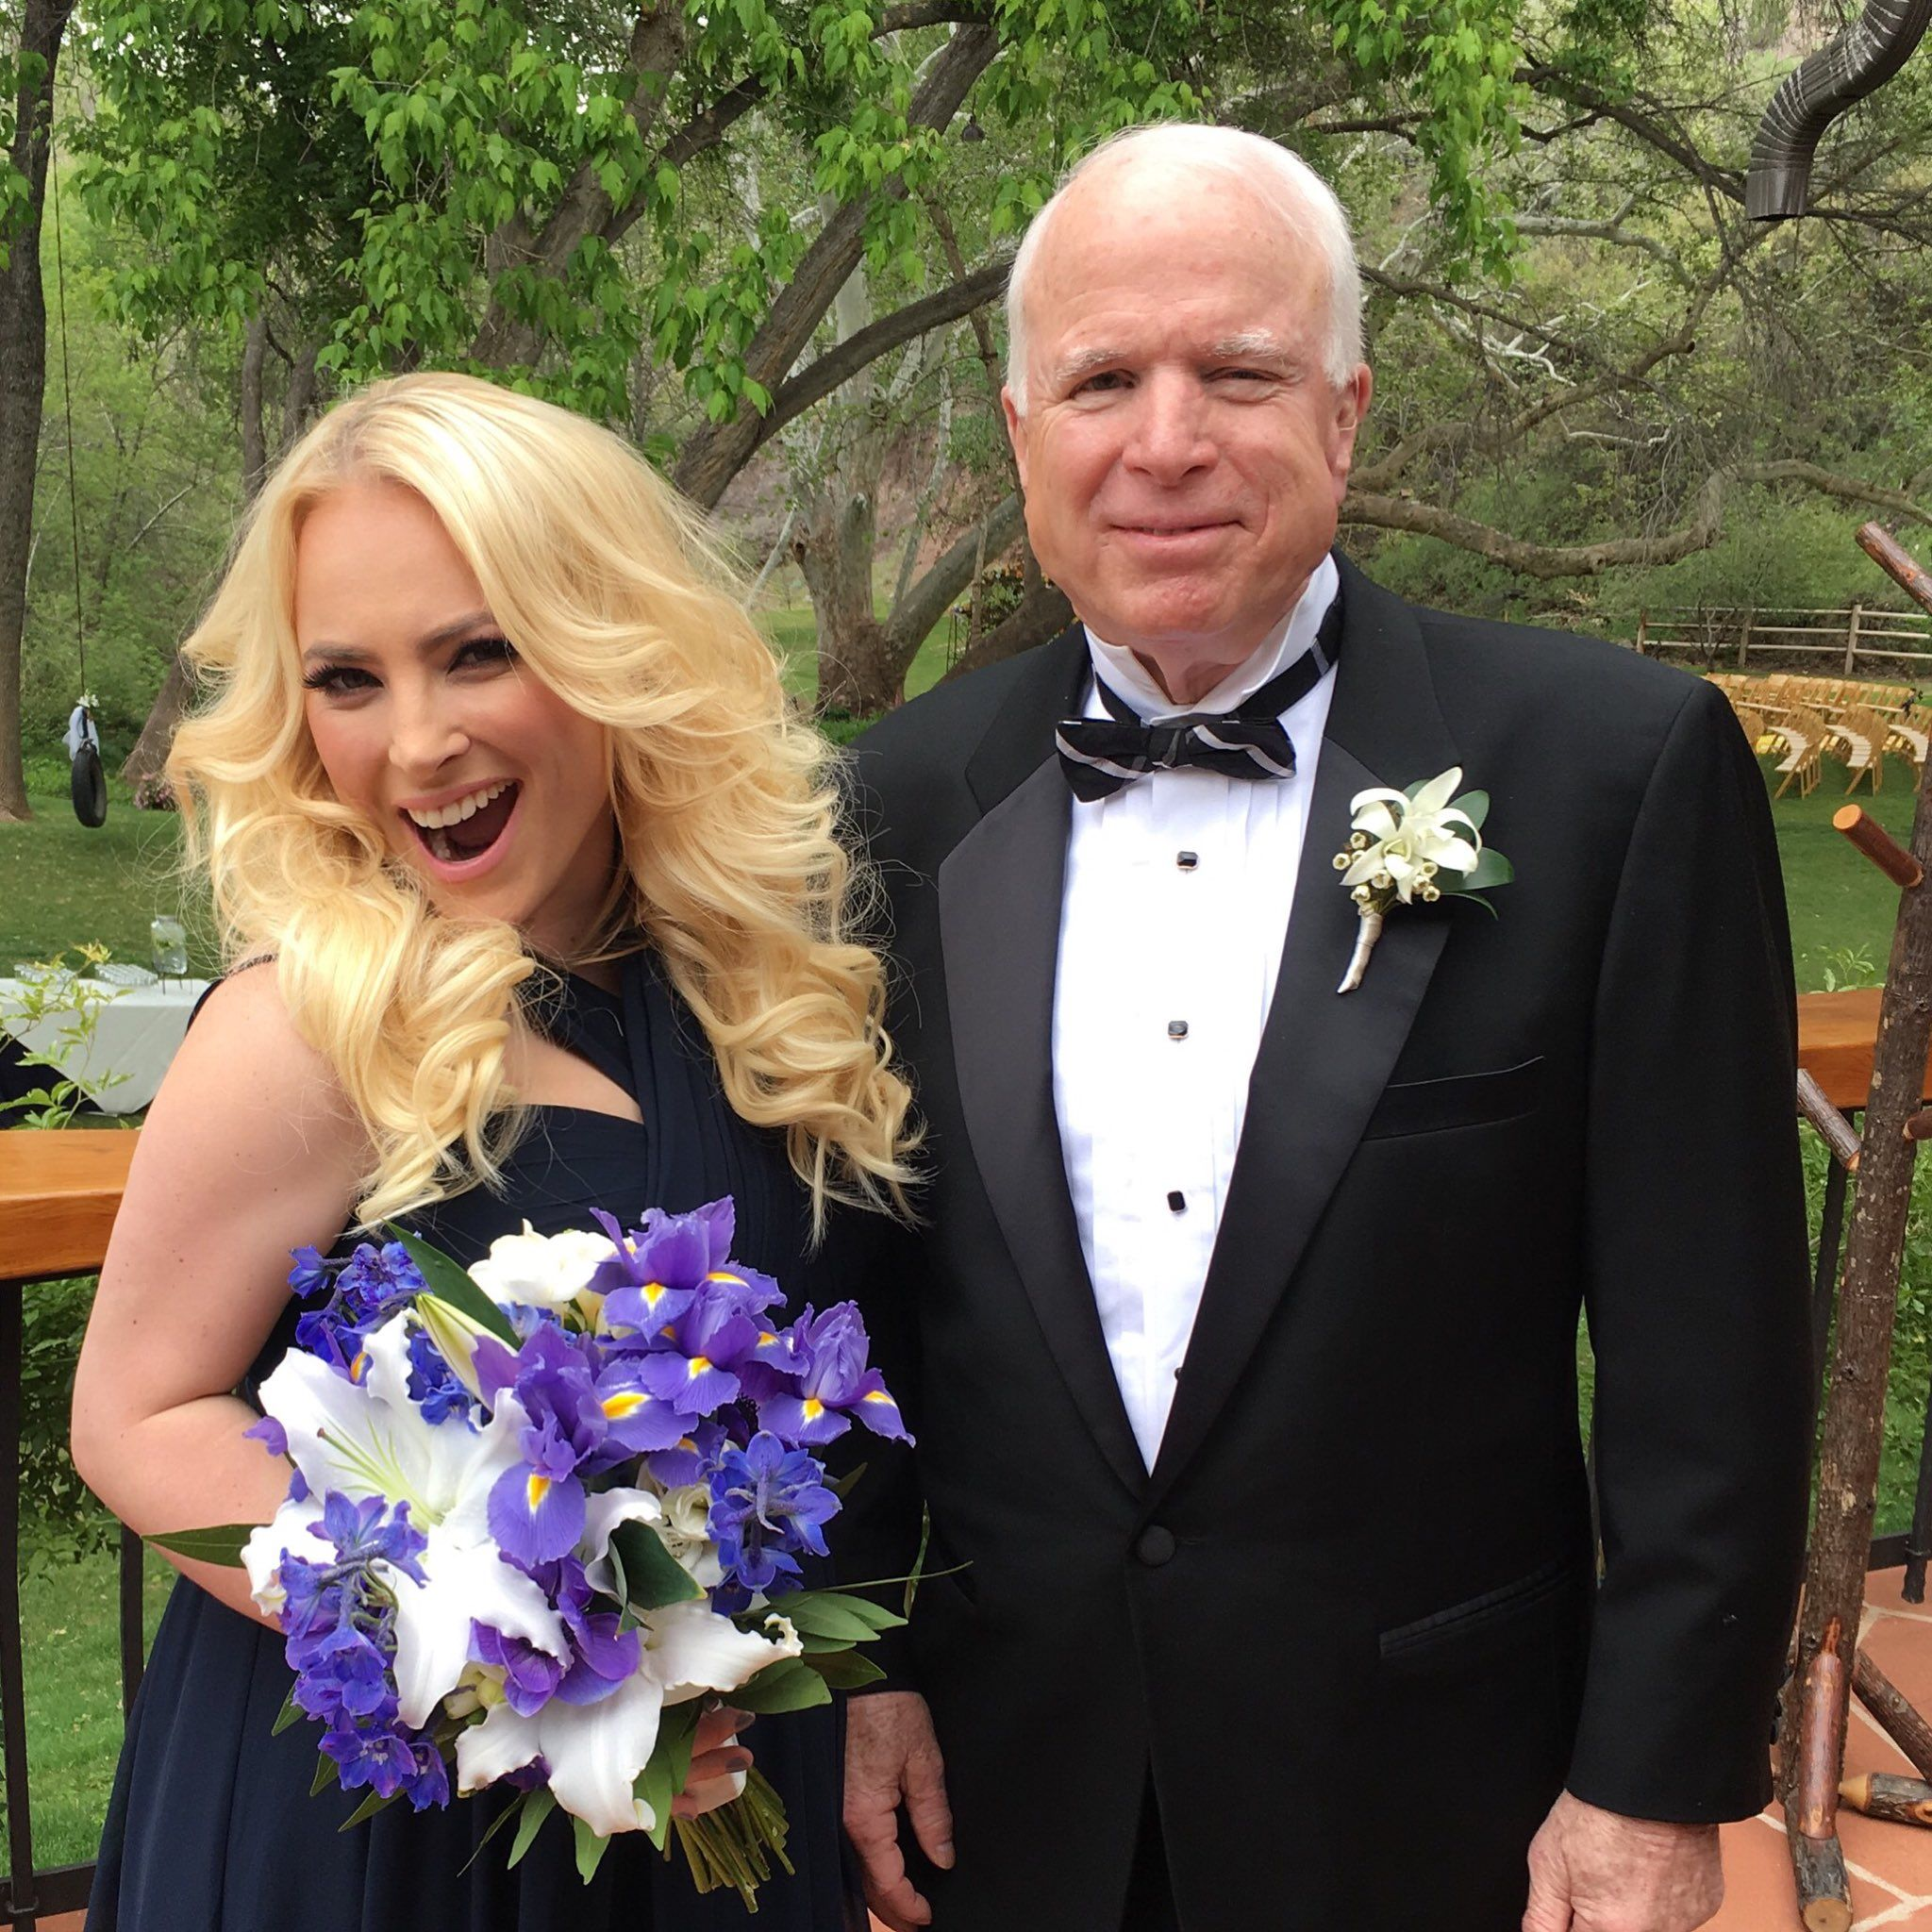 Meghan and John McCain